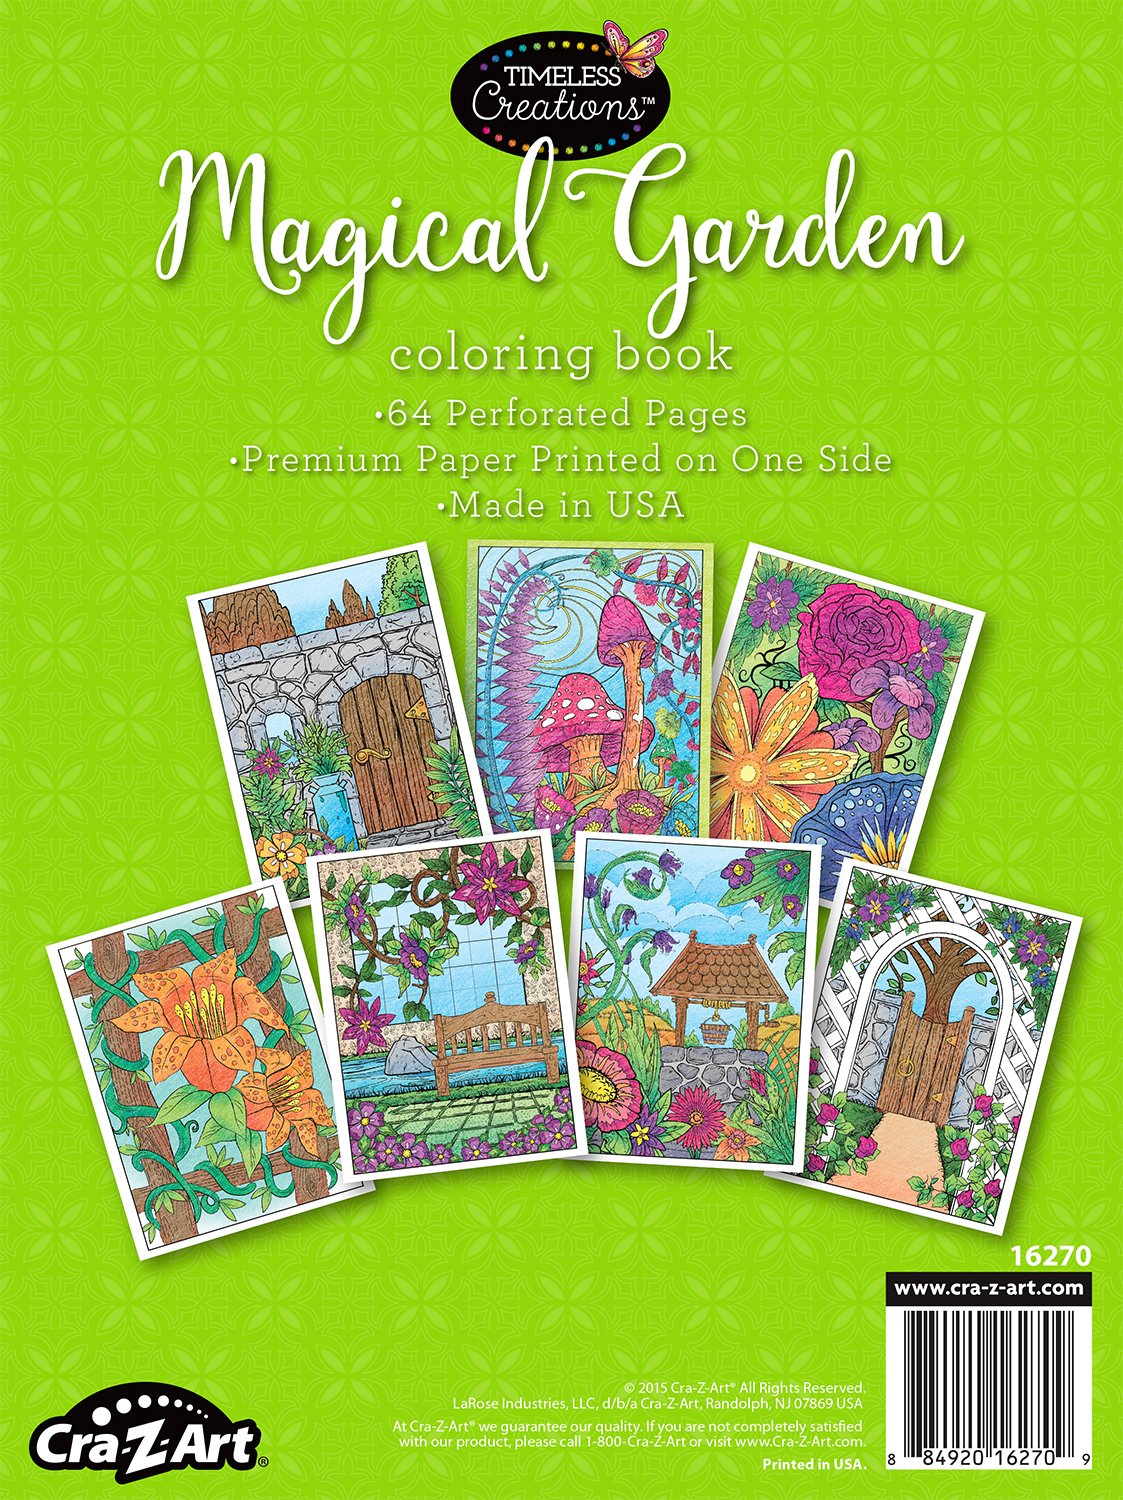 Amazon.com : Cra-Z-Art Timeless Creations Adult Coloring Books ...